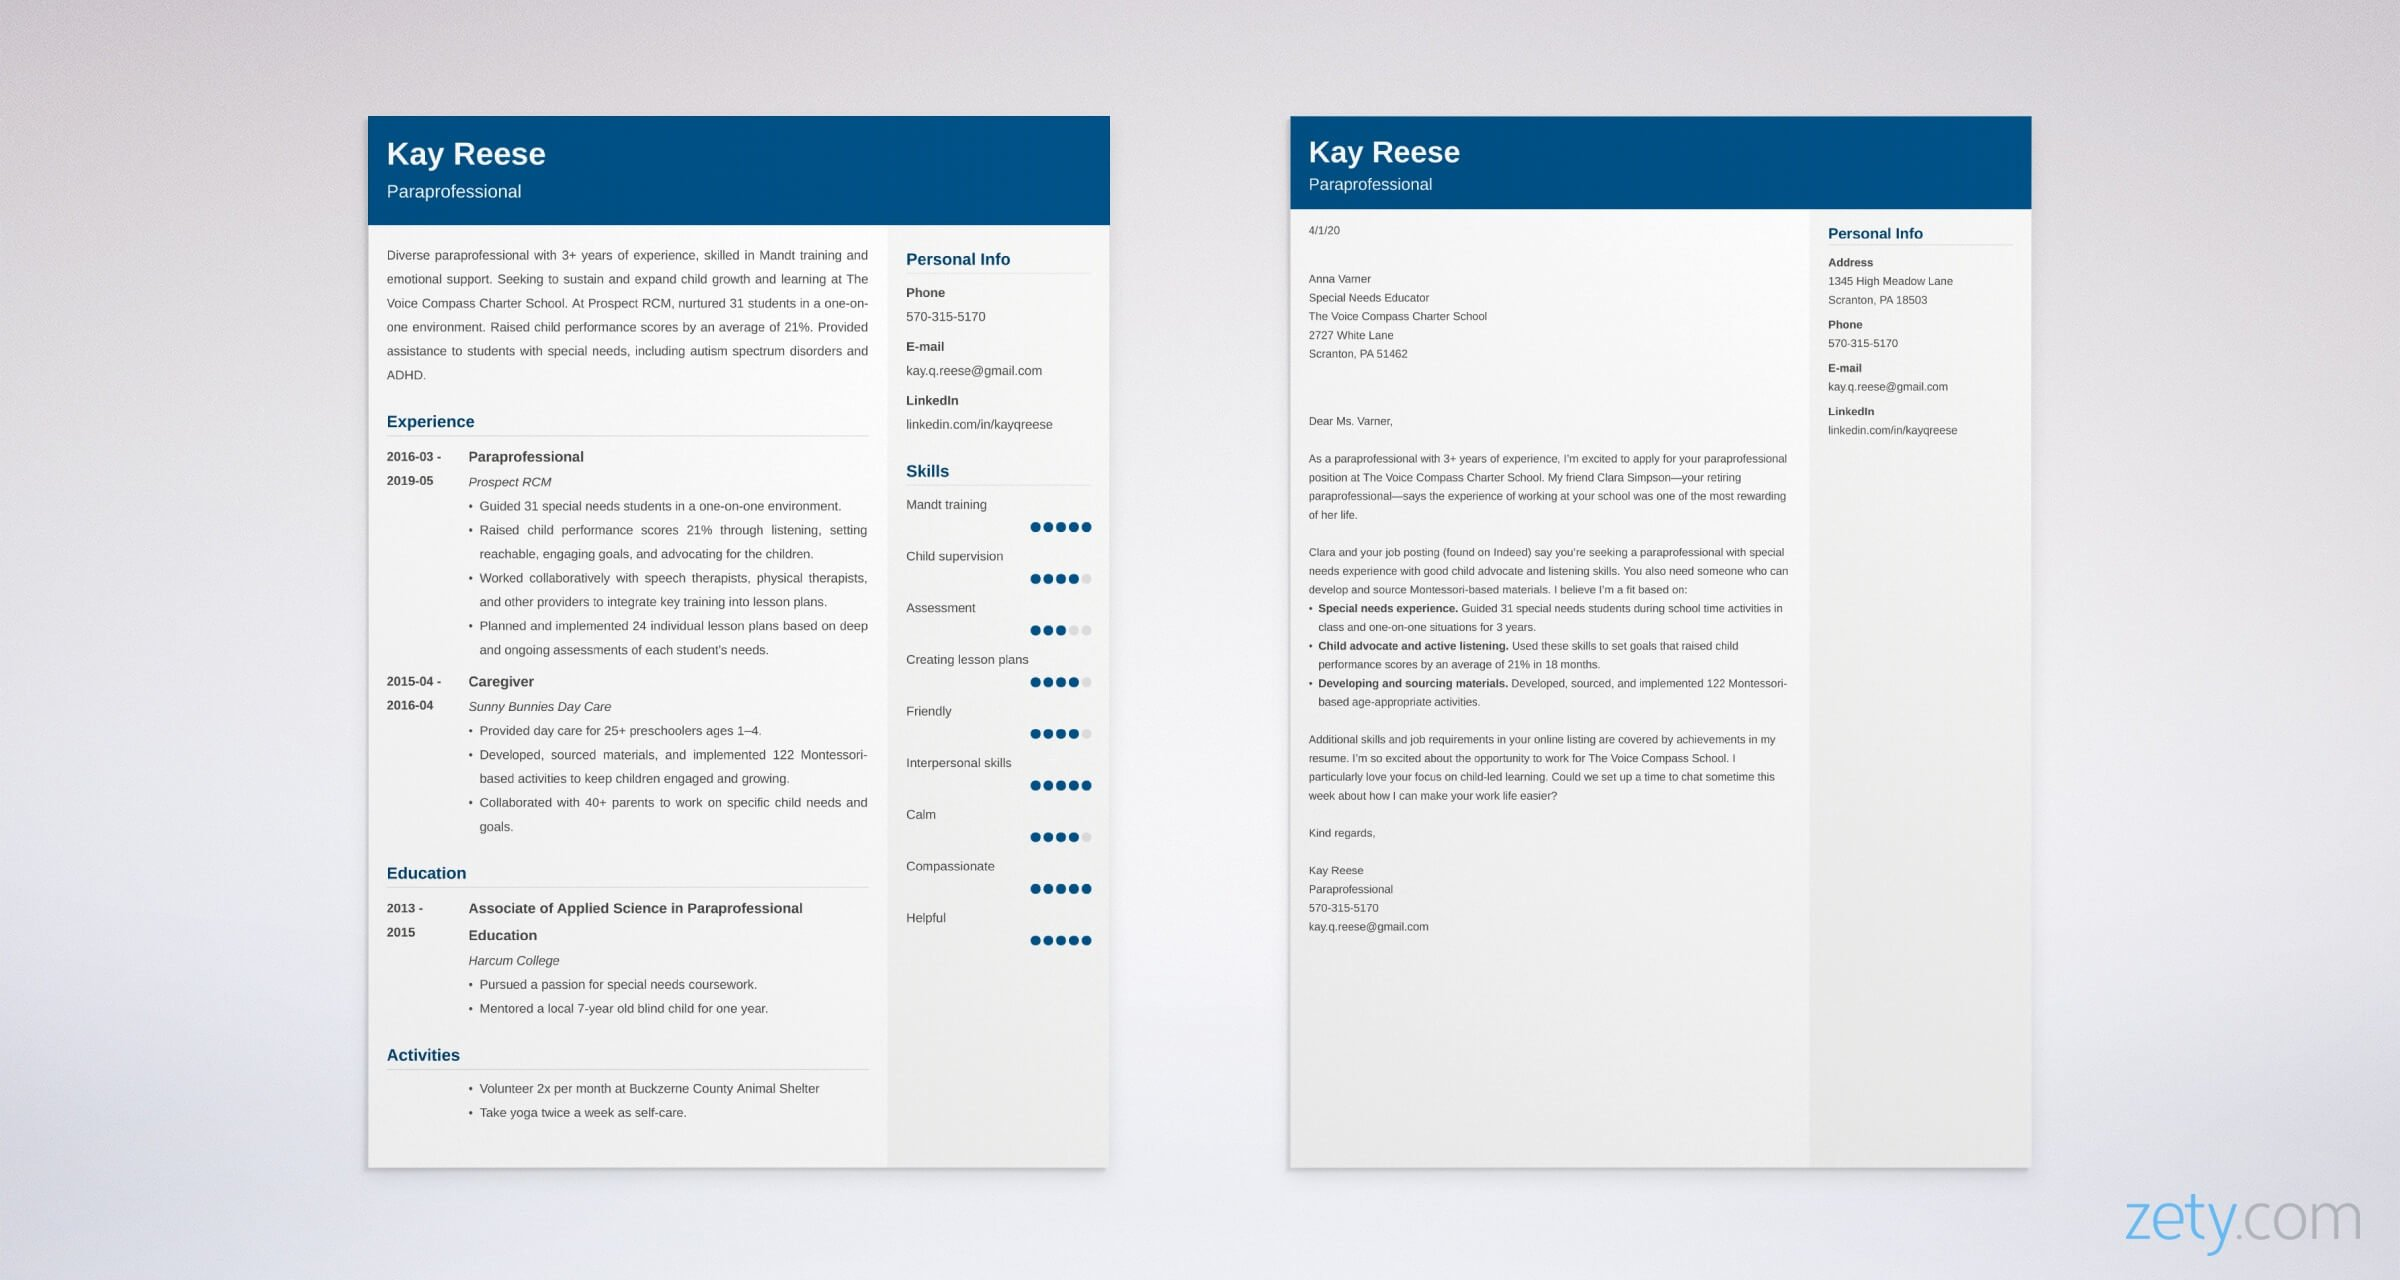 paraprofessional resume and cover letter set